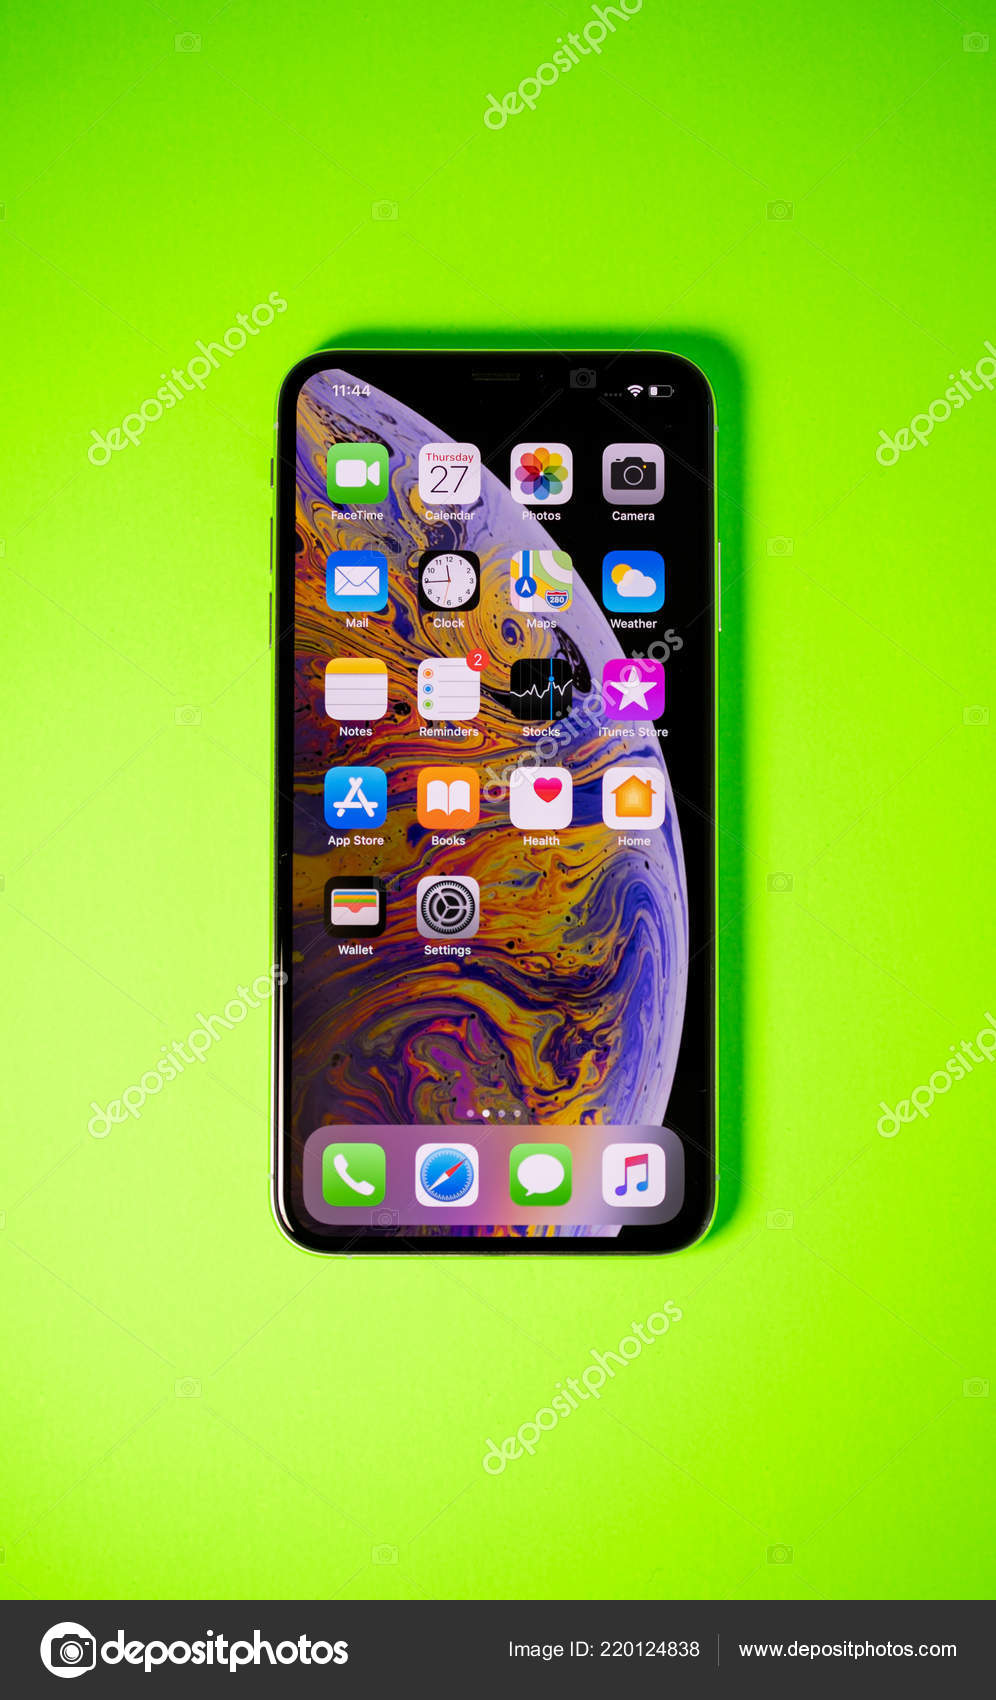 Apple Iphone Xs Max Against Vibrant Green Background Stock